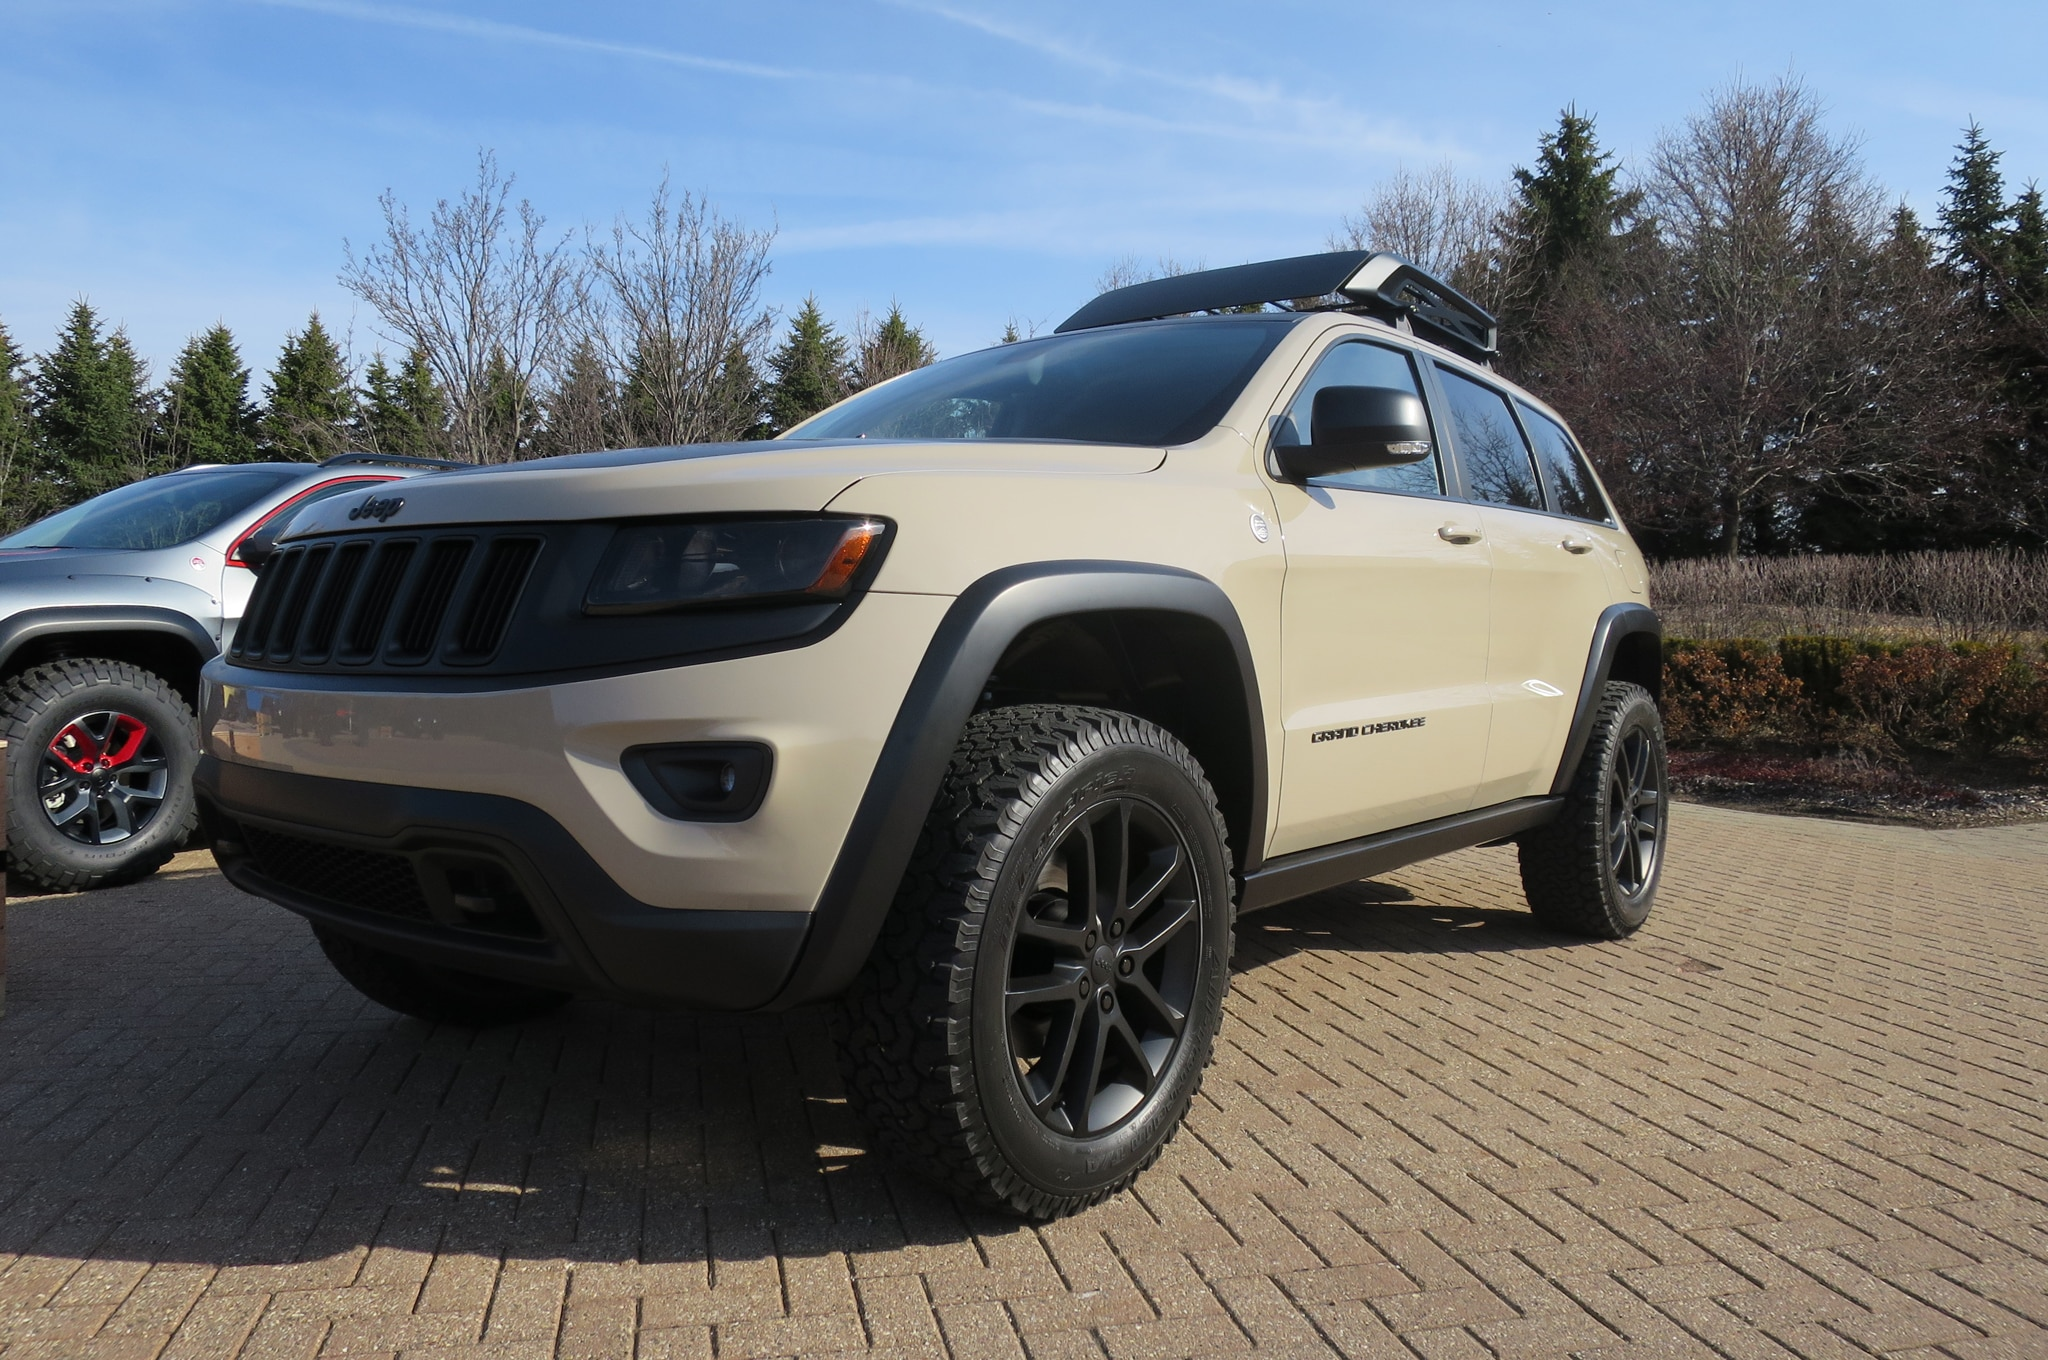 Jeep Grand Cherokee EcoDiesel Trail Warrior Concept front three quarters